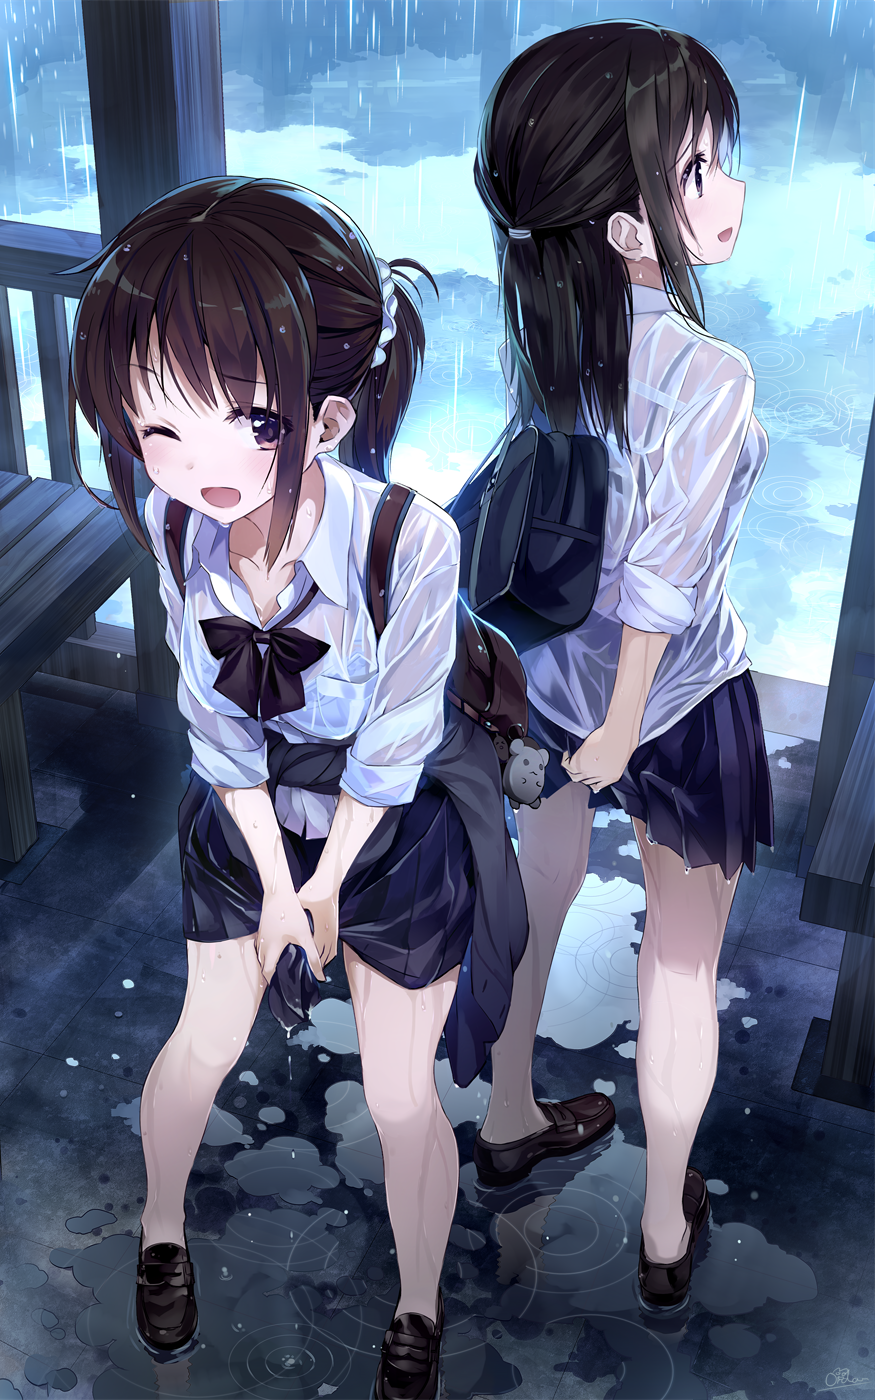 2girls ;d amagai_tarou backpack bag bag_charm bare_legs bench black_bow black_bowtie black_skirt bow bowtie bra breasts brown_hair brown_shoes charm_(object) clothes_around_waist collarbone collared_shirt commentary_request day duffel_bag eyebrows_visible_through_hair hair_ornament hair_scrunchie half_updo highres leaning_forward legs_apart loafers long_hair long_sleeves looking_at_viewer looking_away looking_to_the_side low_ponytail medium_breasts multiple_girls no_socks one_eye_closed open_mouth original pleated_skirt puddle rain reflection ripples school_bag school_uniform scrunchie see-through shirt shoes short_sleeves sidelocks signature skirt sleeves_pushed_up smile standing tareme underwear violet_eyes water wet wet_clothes wet_shirt white_bra white_shirt wing_collar wringing_clothes